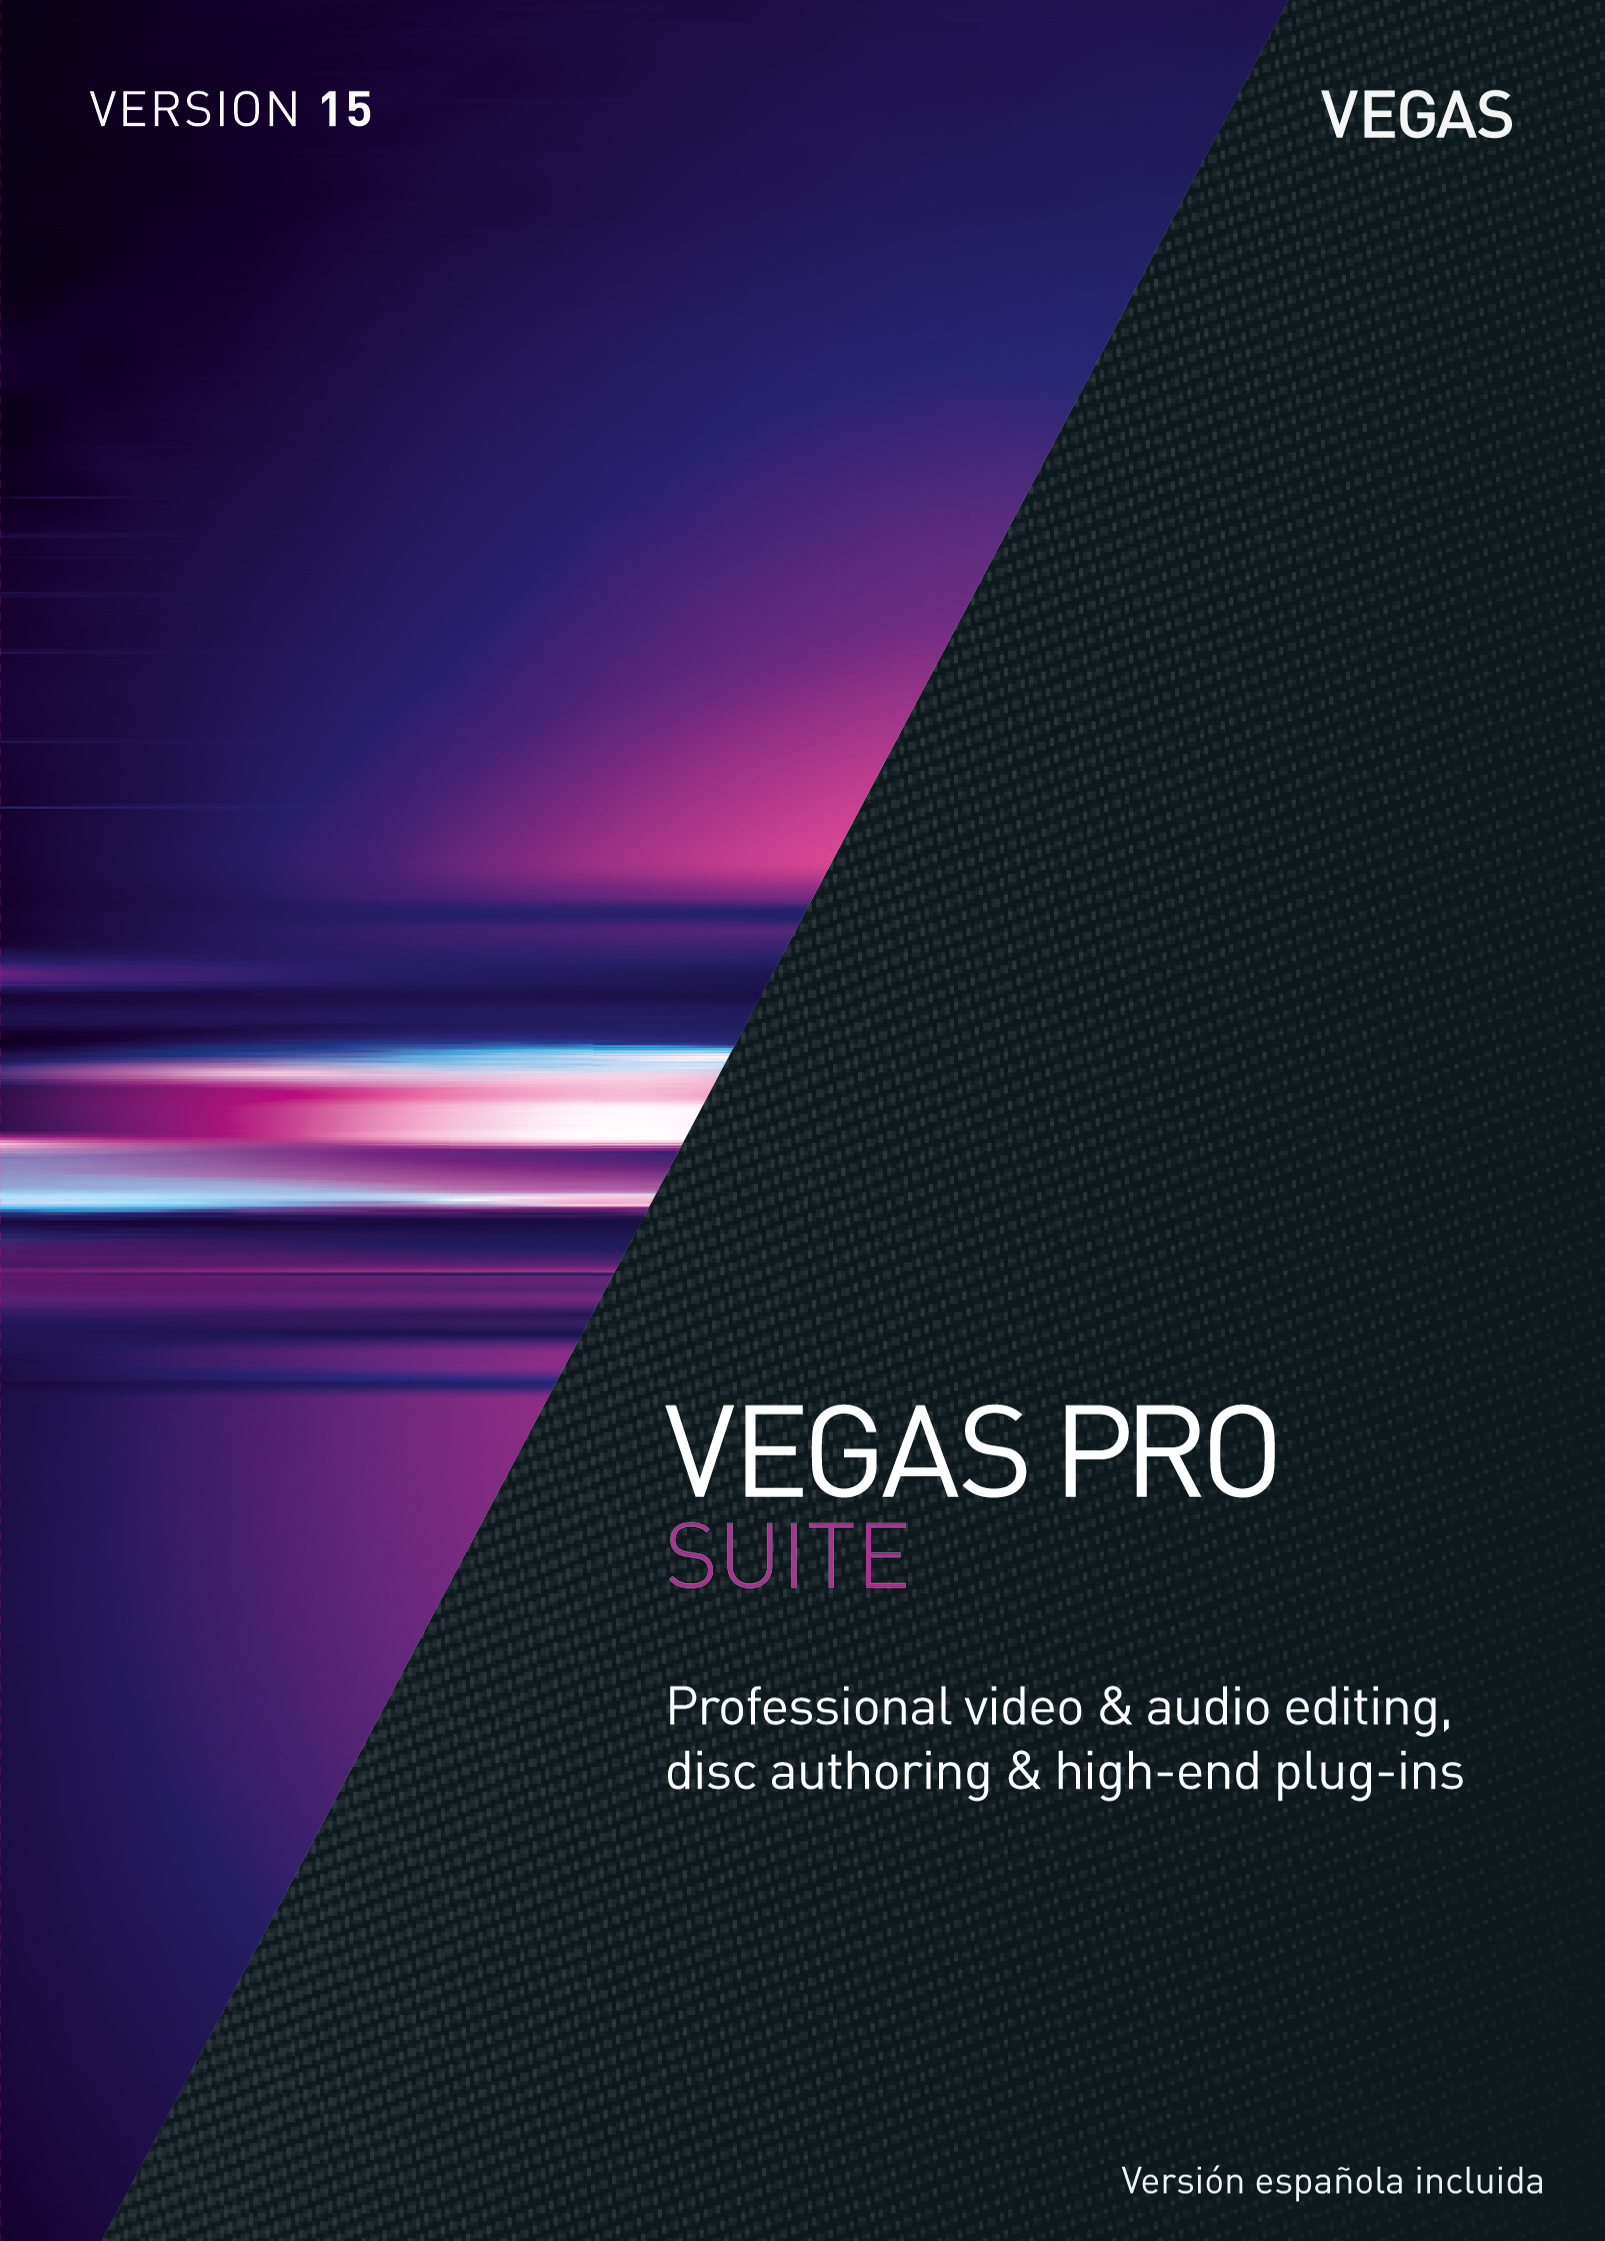 VEGAS Pro 15 Suite - Professional video & audio editing, disc authoring & high-end plug-ins [Download] by VEGAS